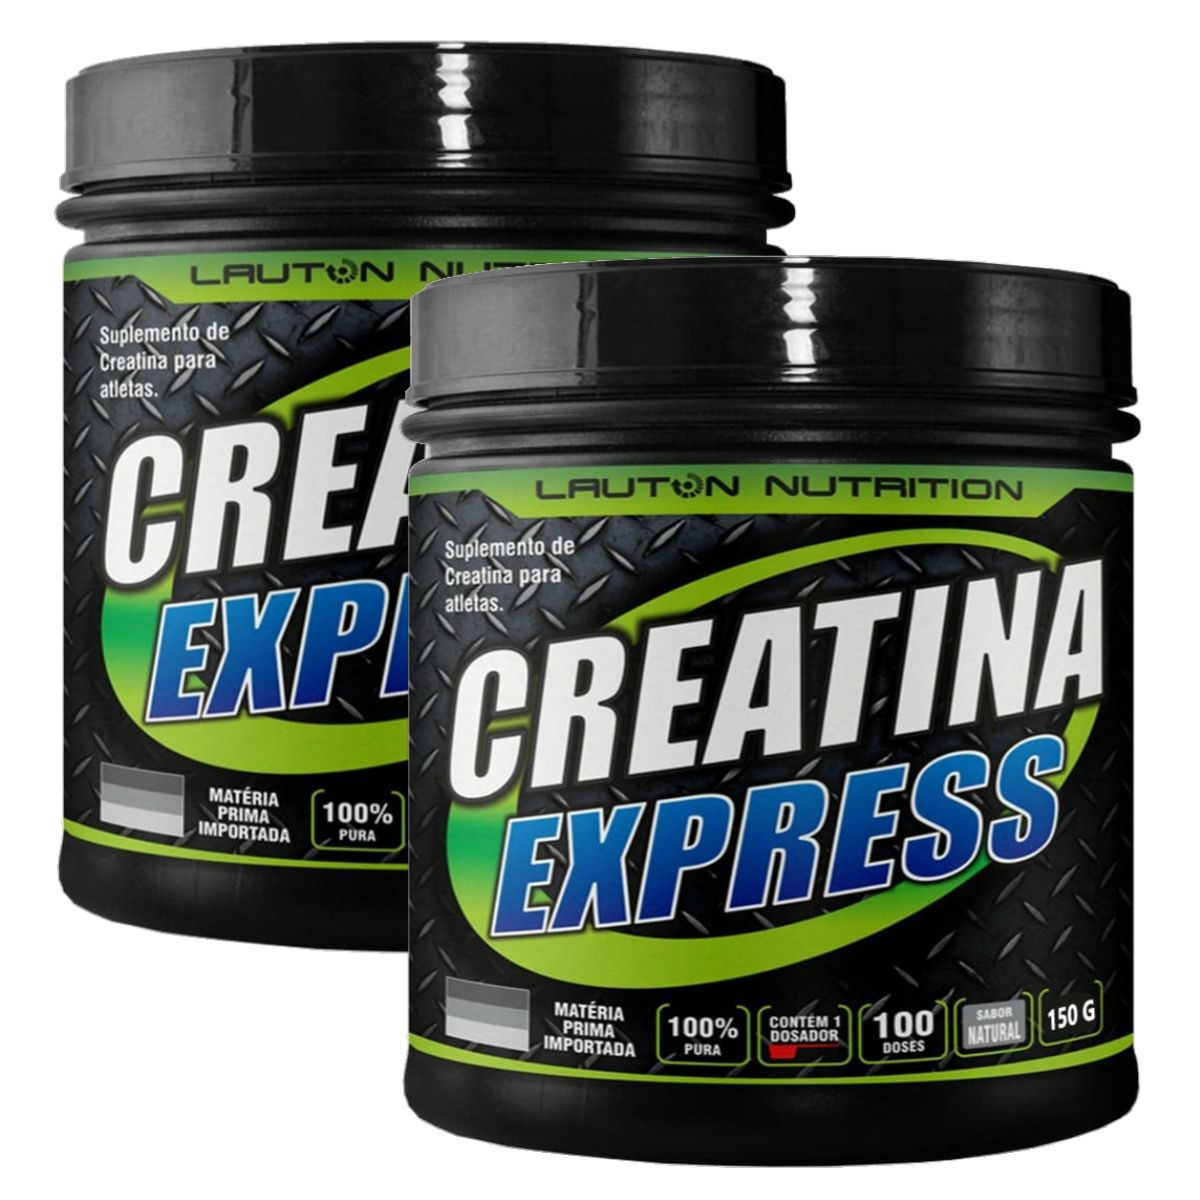 Kit 2 Creatinas Express 100% Pura 100g - Lauton Nutrition